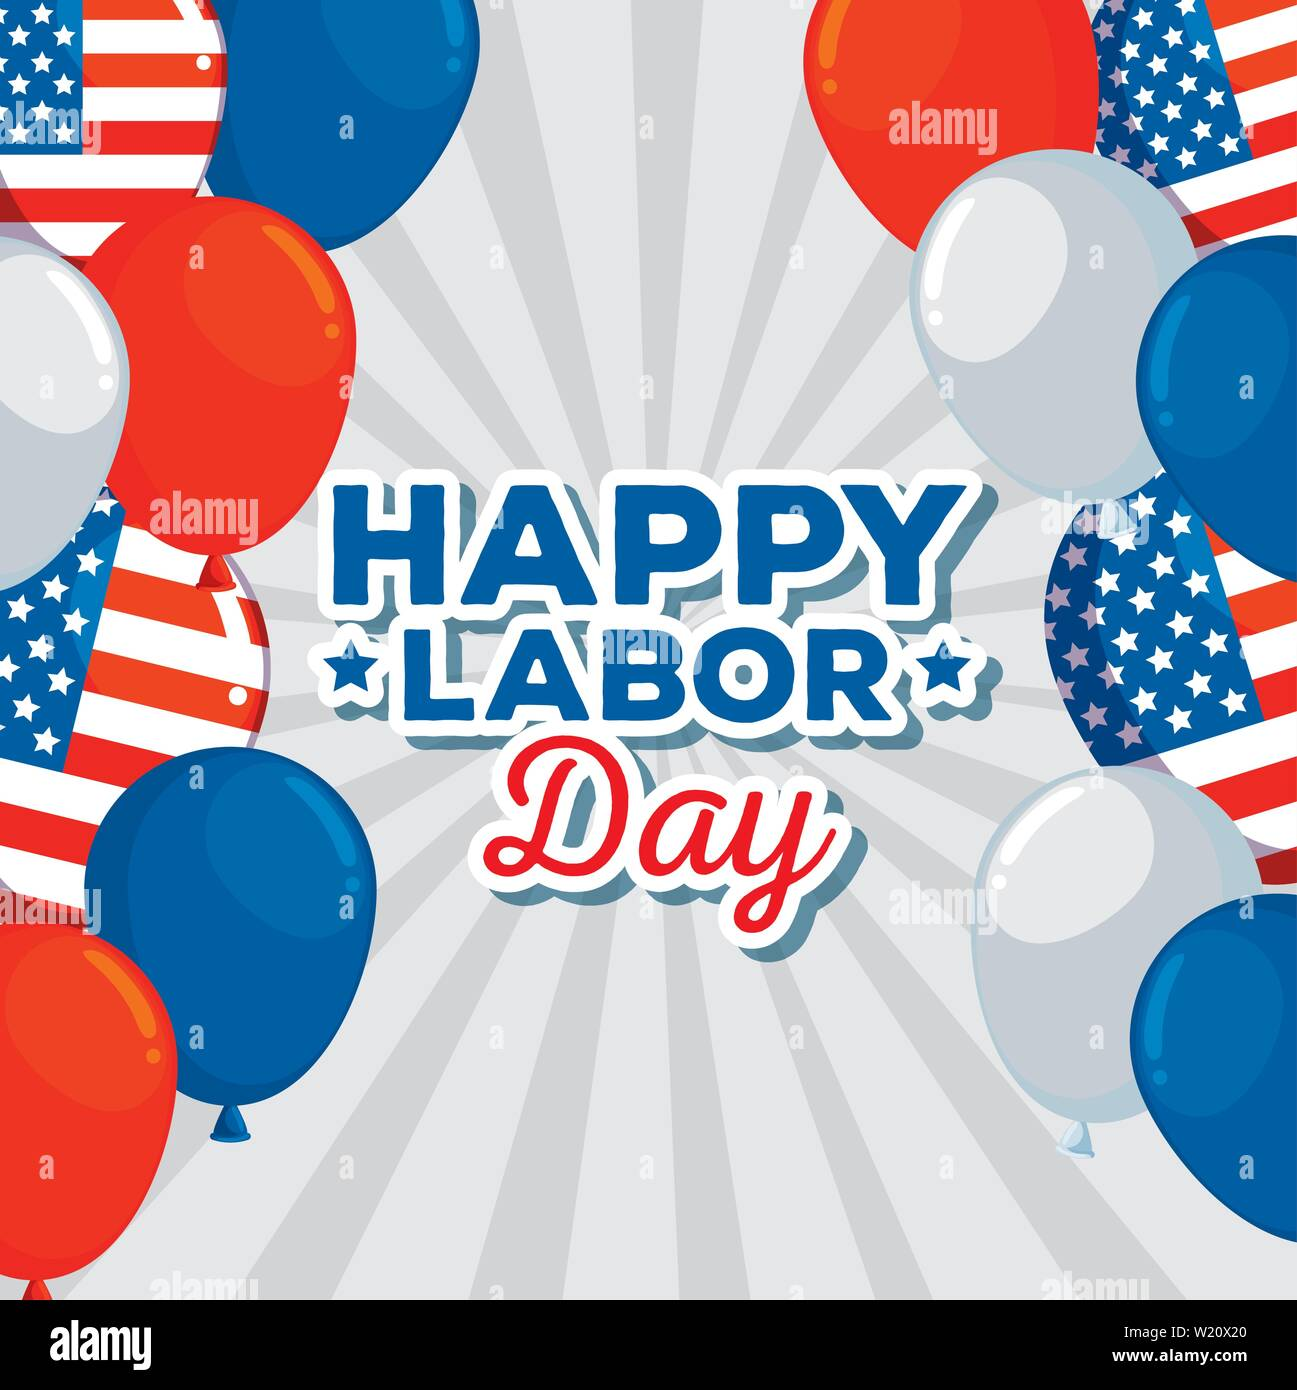 Happy And Traditional Labor Day Celebration Stock Vector Art